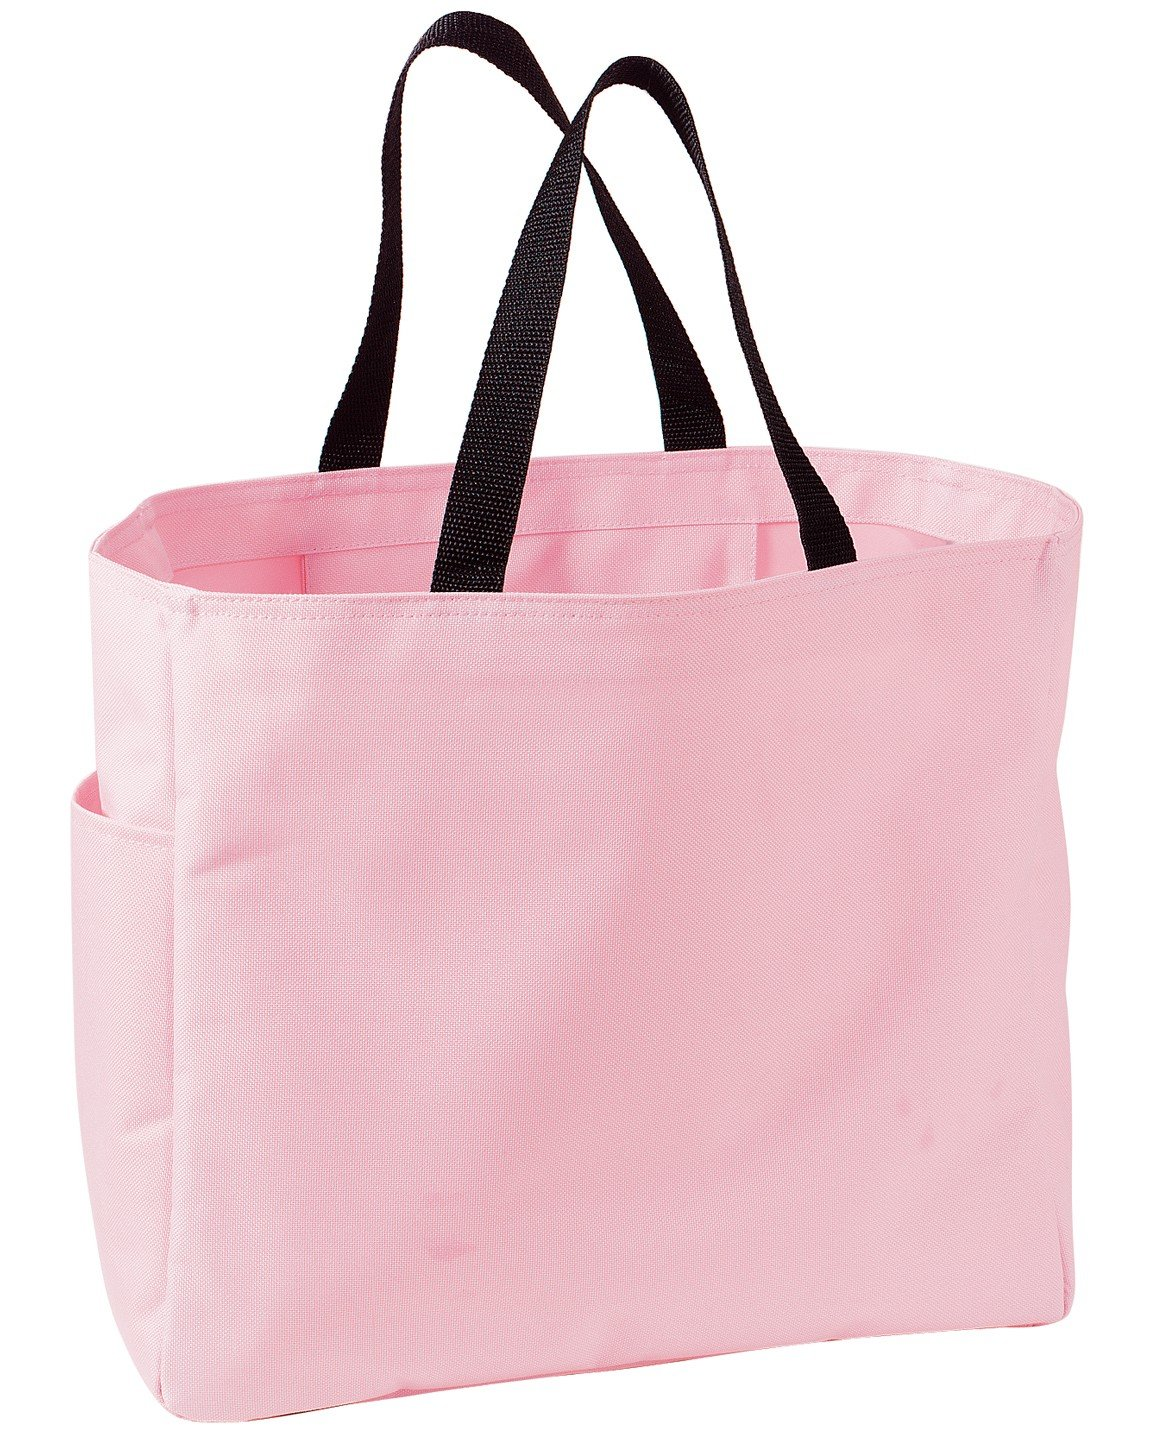 Port & Company luggage-and-bags Improved Essential Tote OSFA Pink